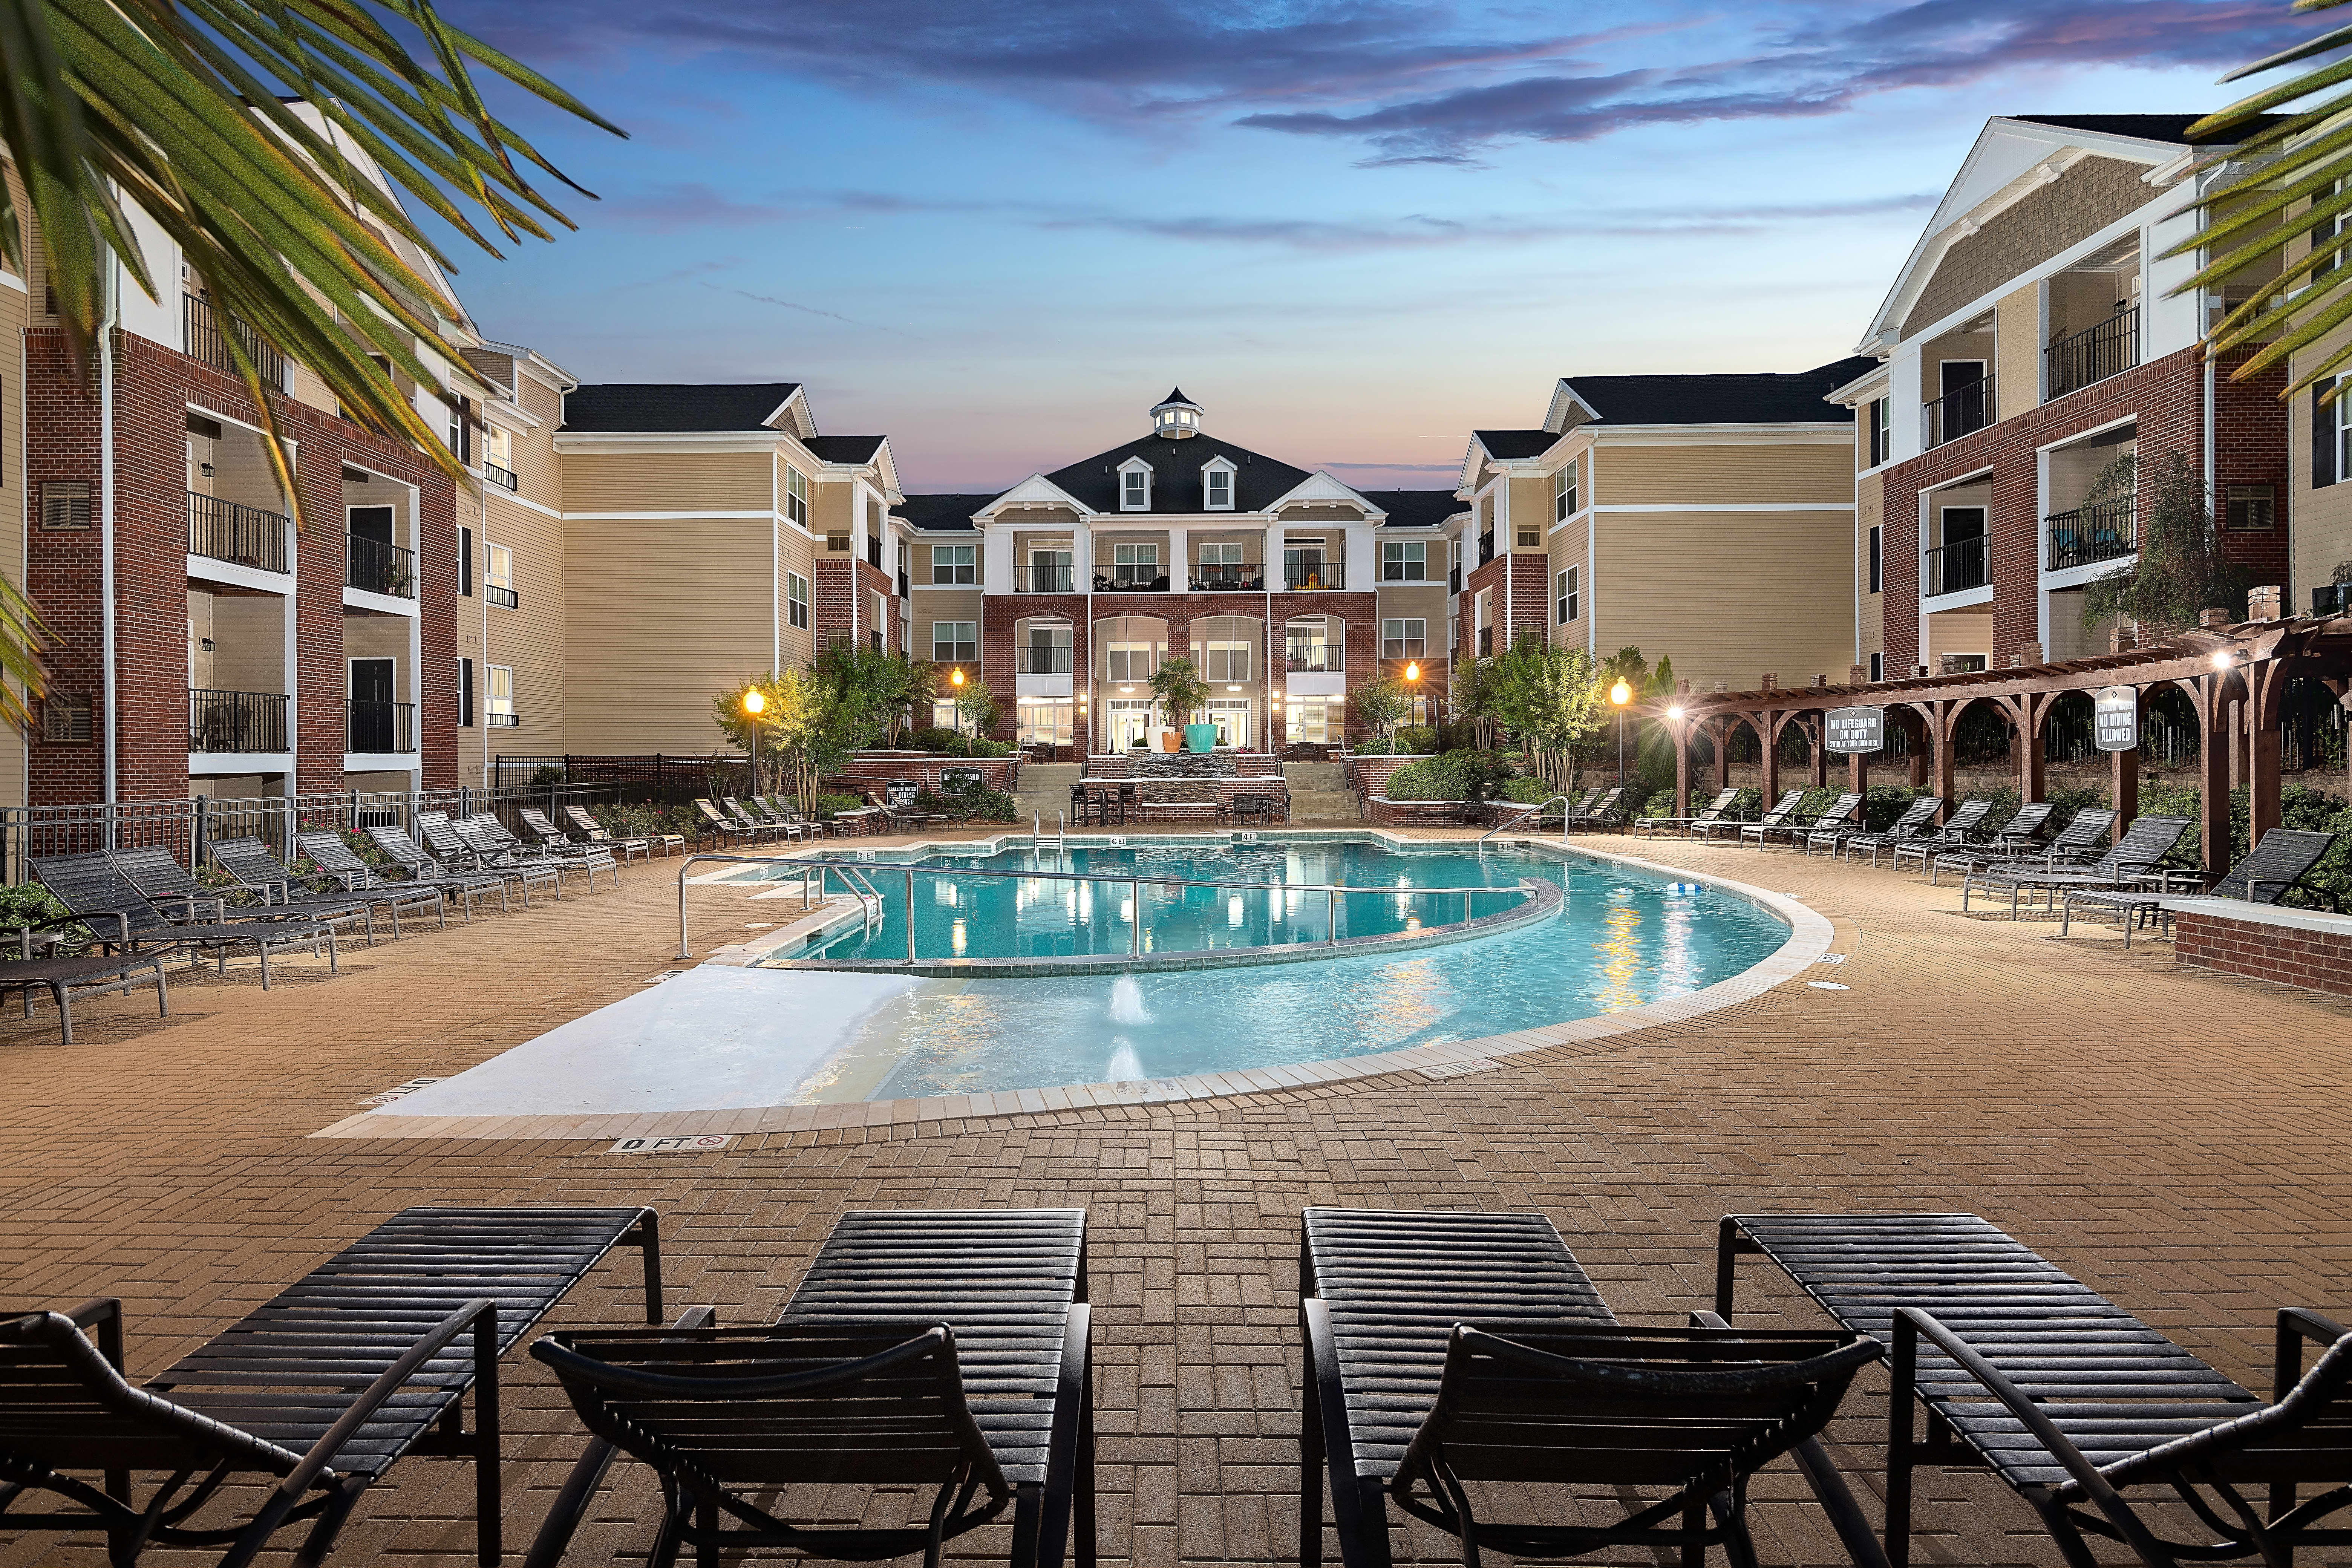 Apartments Near UofSC Abberly Village for University of South Carolina Students in Columbia, SC